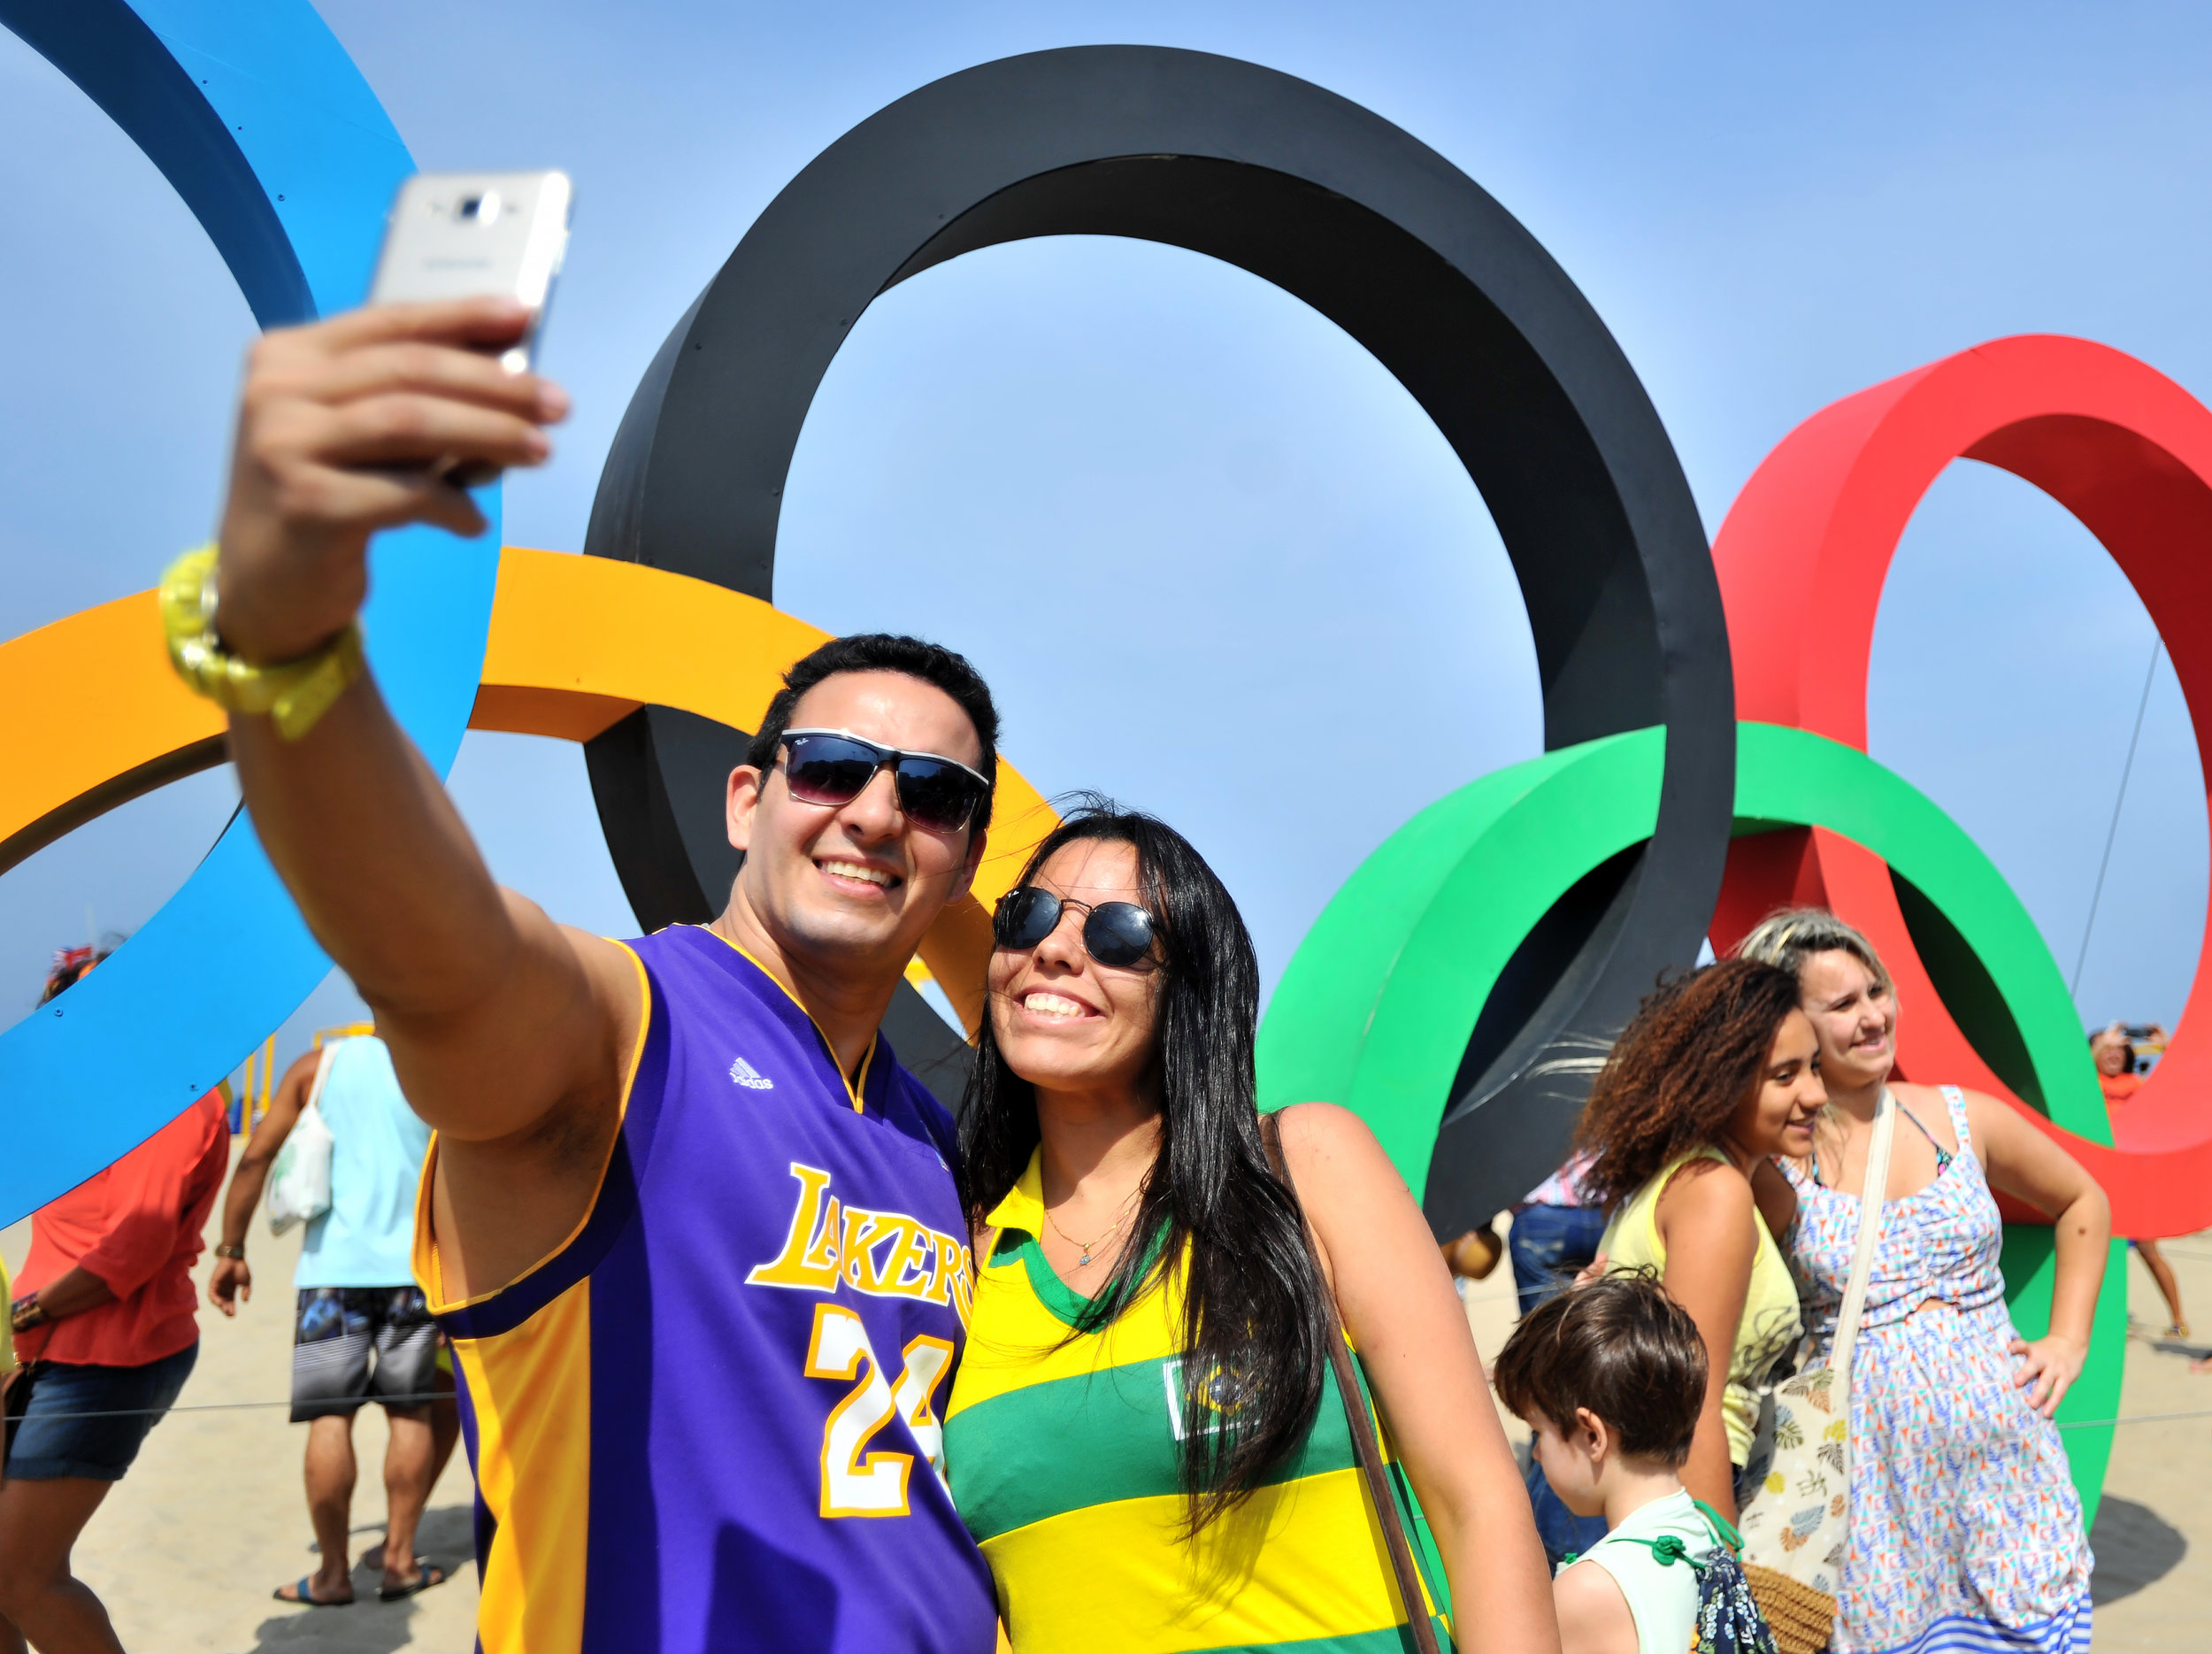 Roberto Patriota and Thamyus Sihra take a photo with the Olympic Rings at Copacabana Beach in Rio de Janeiro, Brazil, on August 7, 2016. (Sarah Stier | Ball State at the Games)